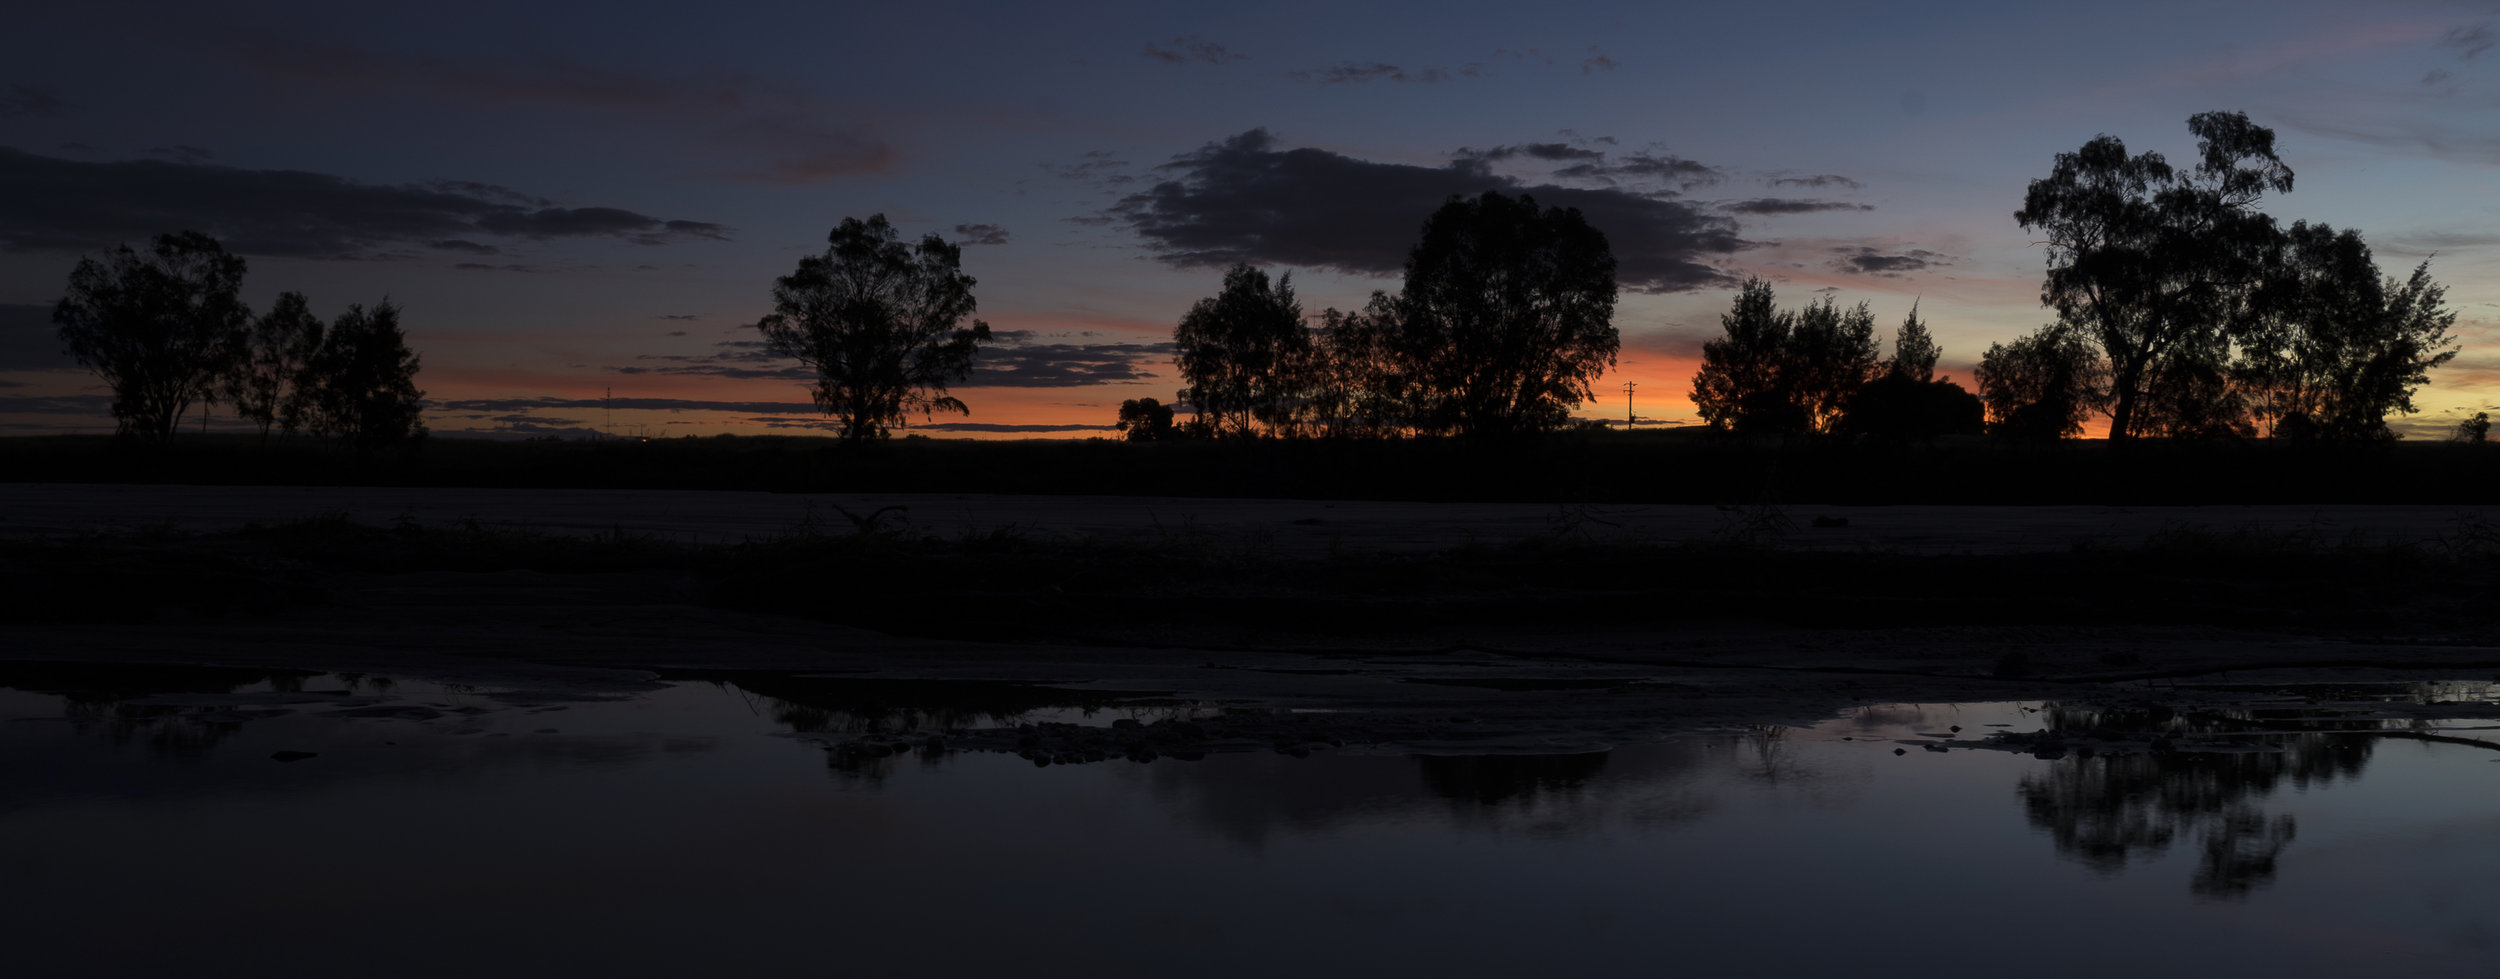 Sunset from the banks of Flinders River before heading to the pub.